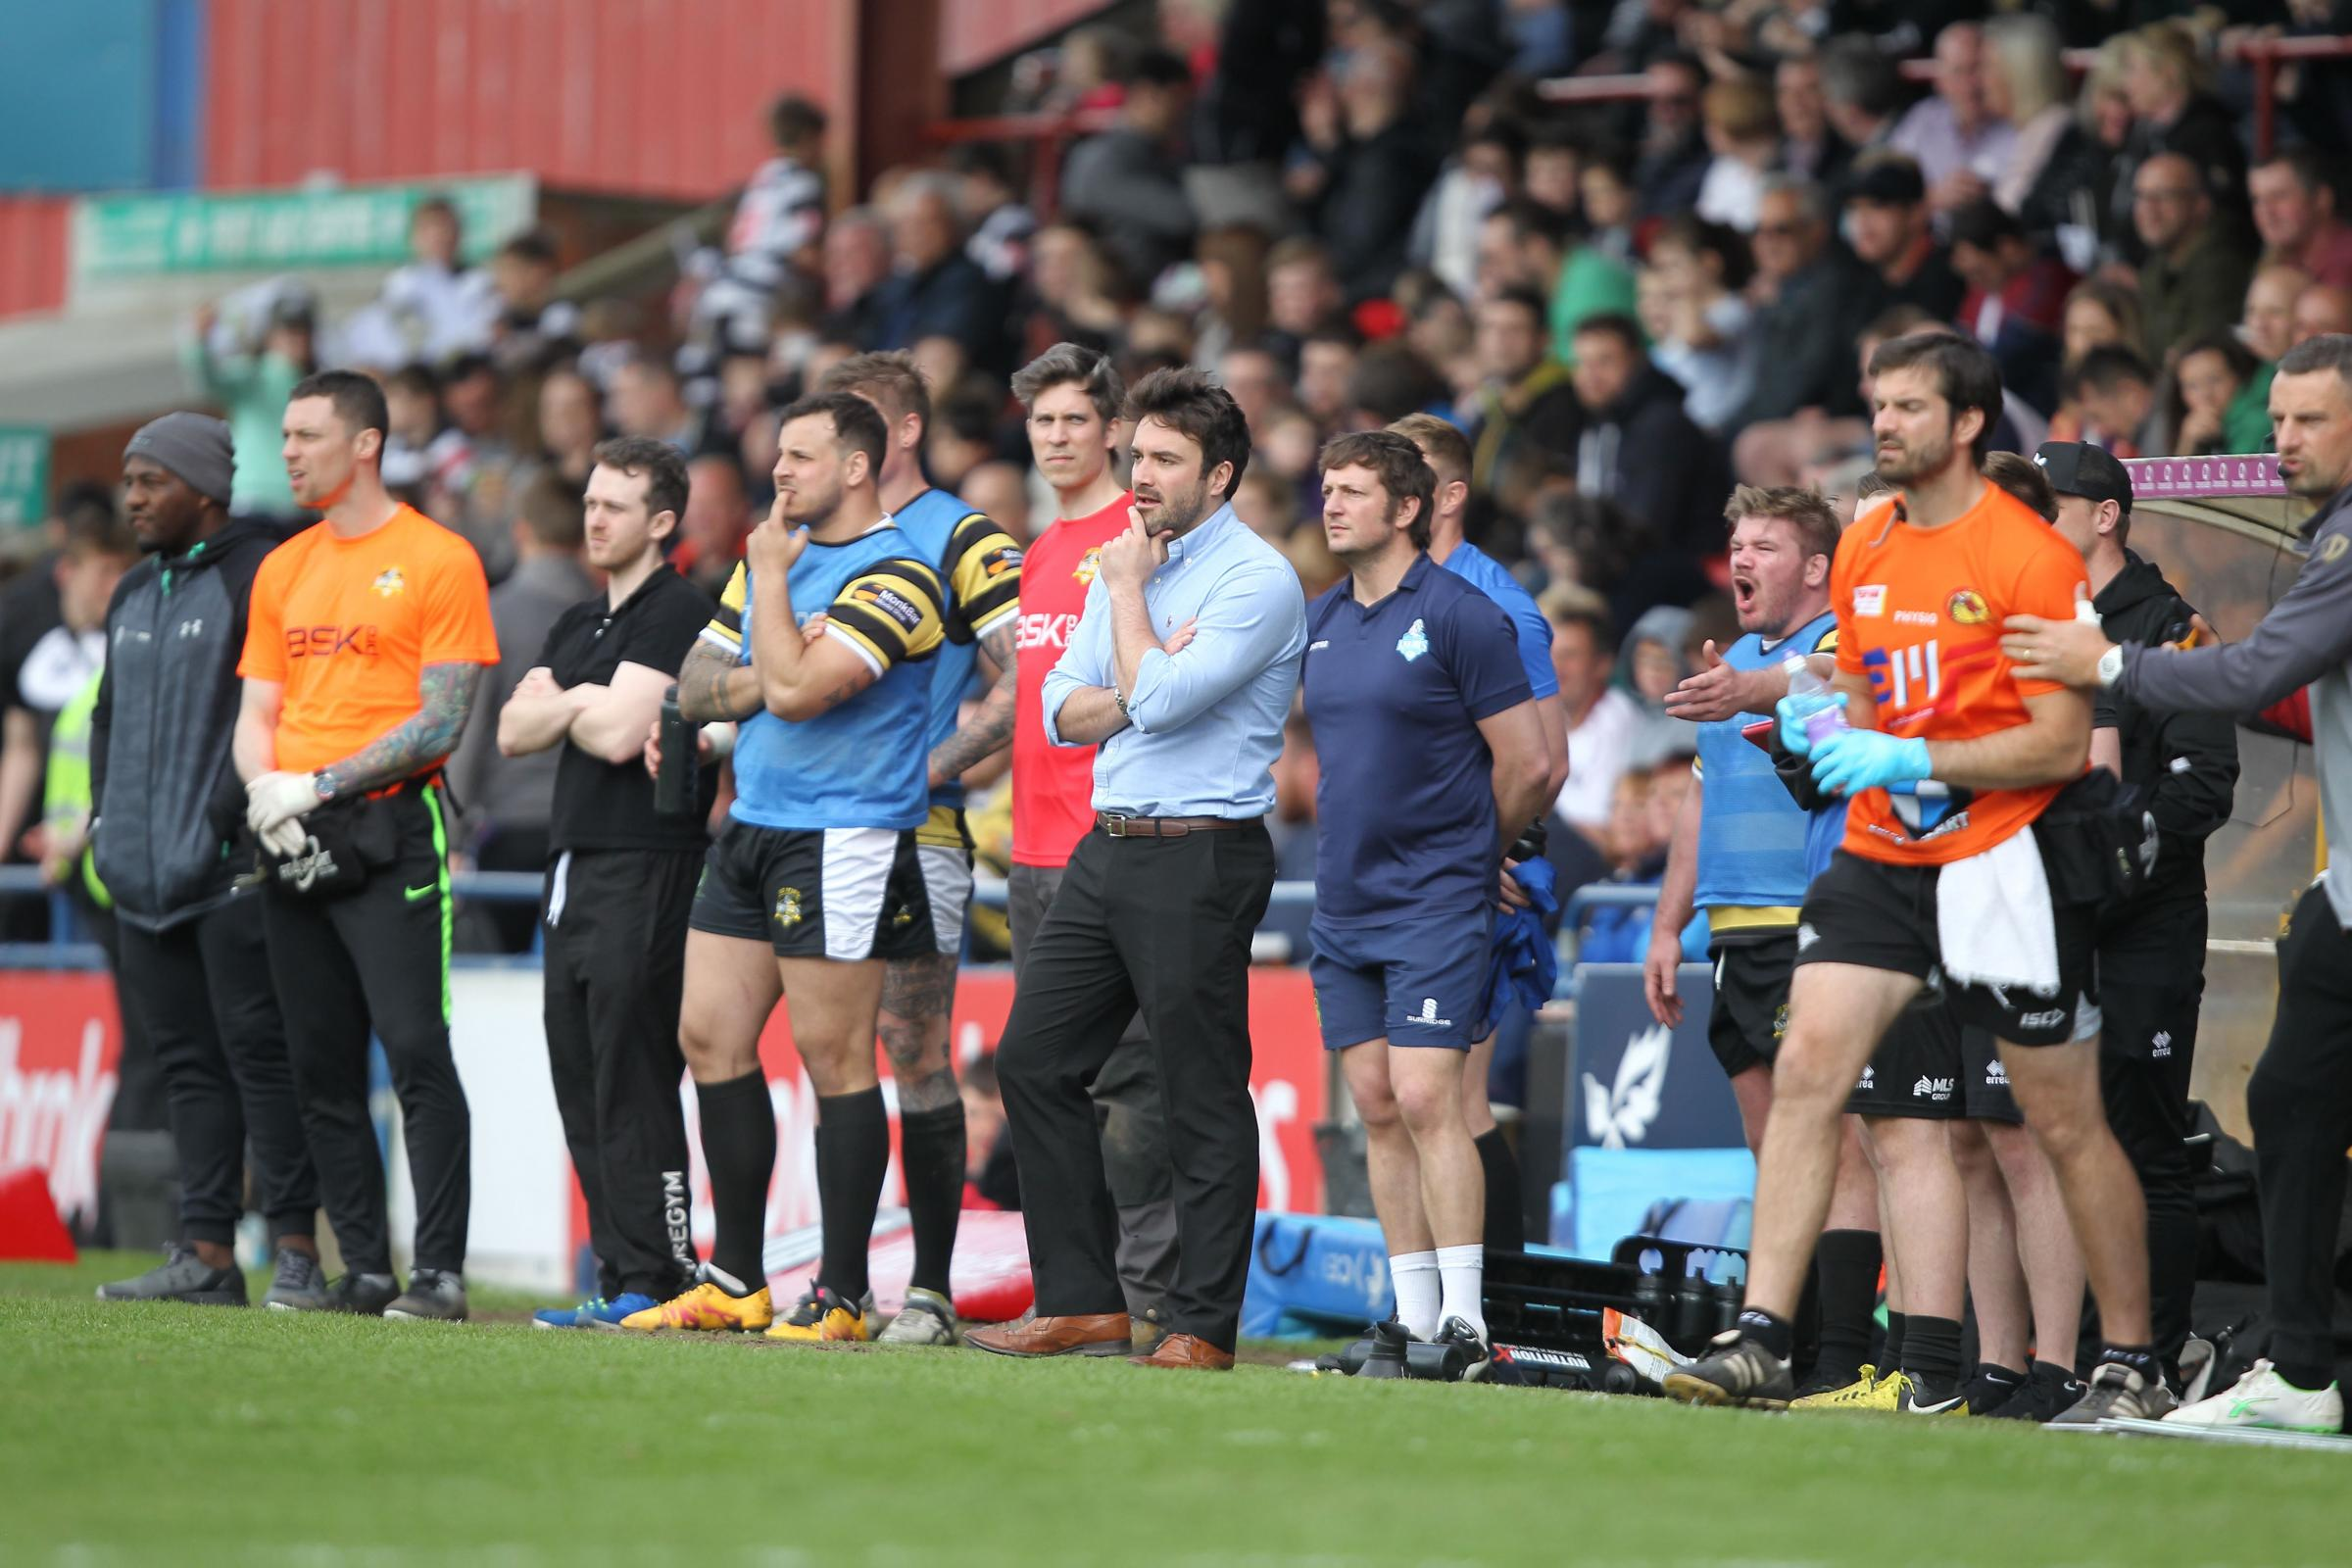 MAINTAIN STANDARDS: York City Knights coach James Ford, centre, looks on during last week's Ladbrokes Challenge Cup fifth round tie against Catalans Dragons at Bootham Crescent. Picture: Gordon Clayton/GCSPix